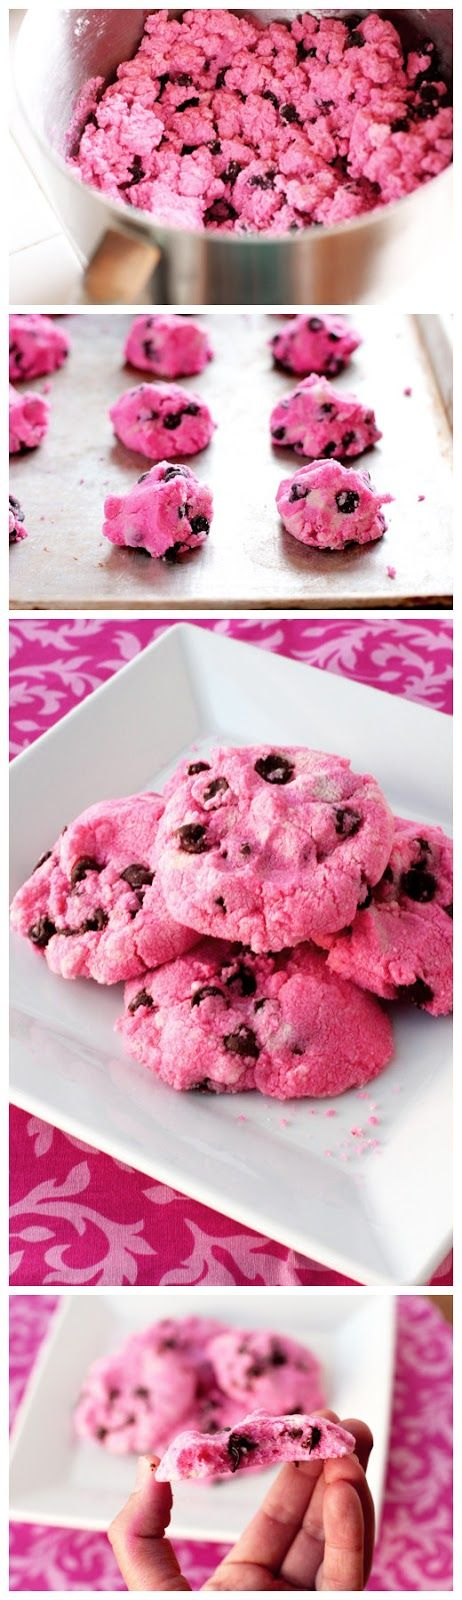 Pink Chocolate Chip Shortbread Cookies | Cookie Anyone? | Pinterest